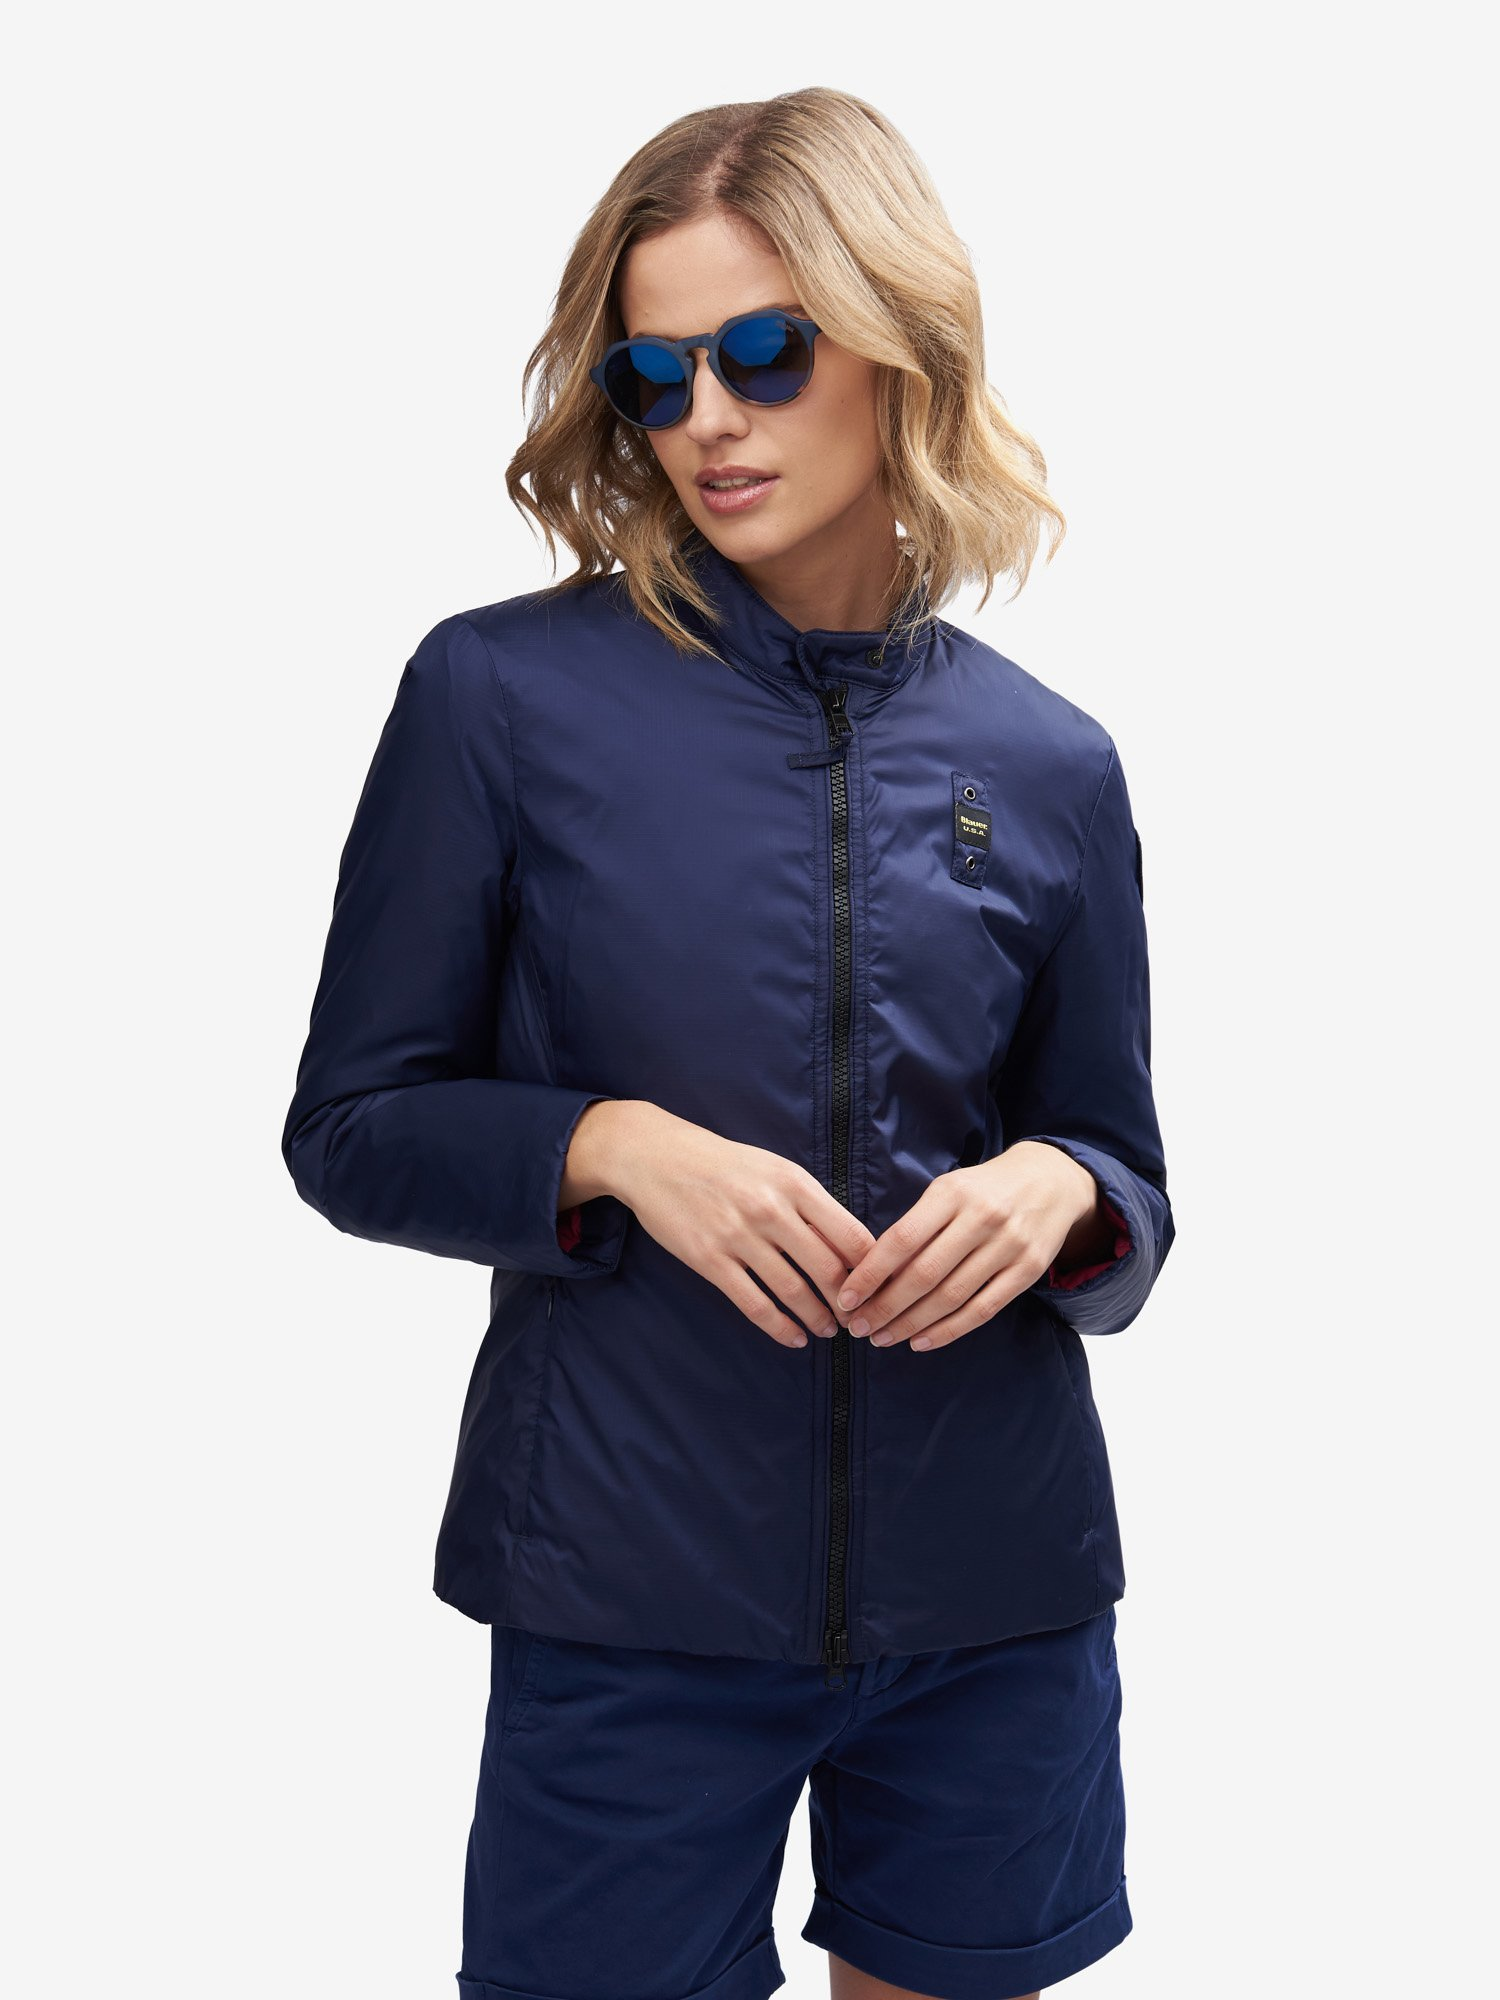 STEPHENS JACKET WTH ECO PADDING - Blauer